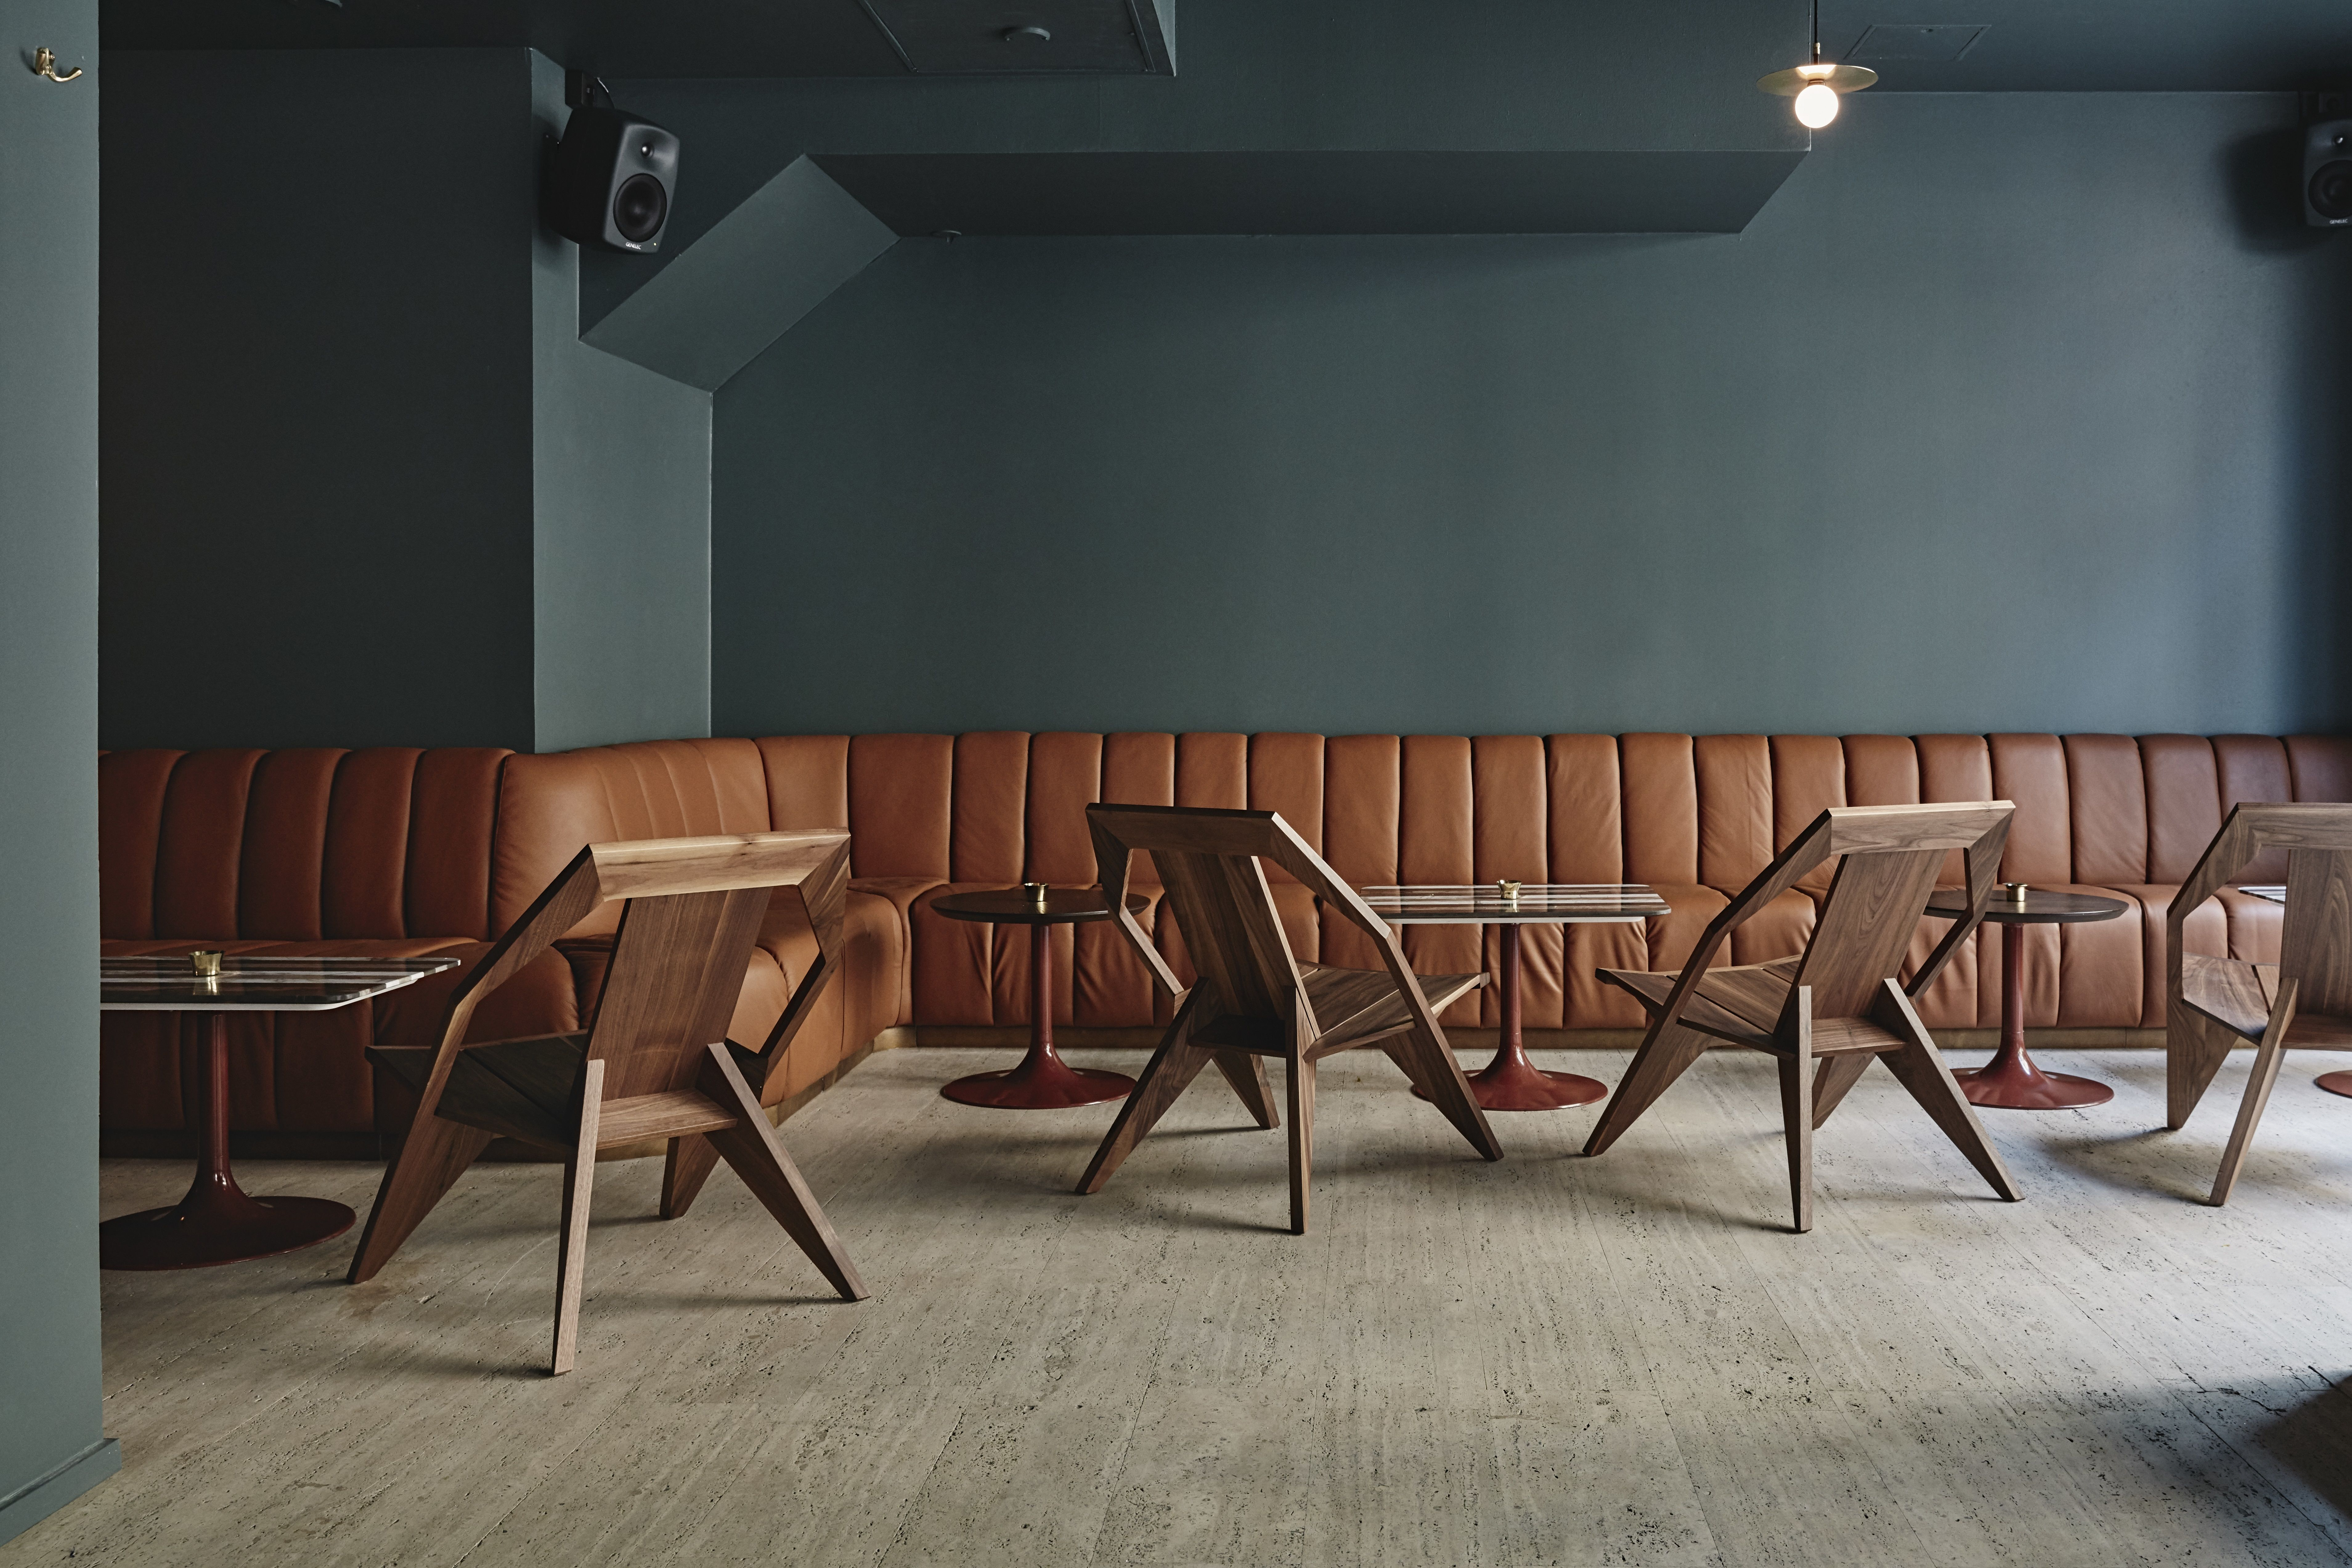 dwell modern lounge furniture. A New Bar In Helsinki Channels Retro Soundtrack And Midcentury Milanese Hotel Lounge - Dwell Modern Furniture D